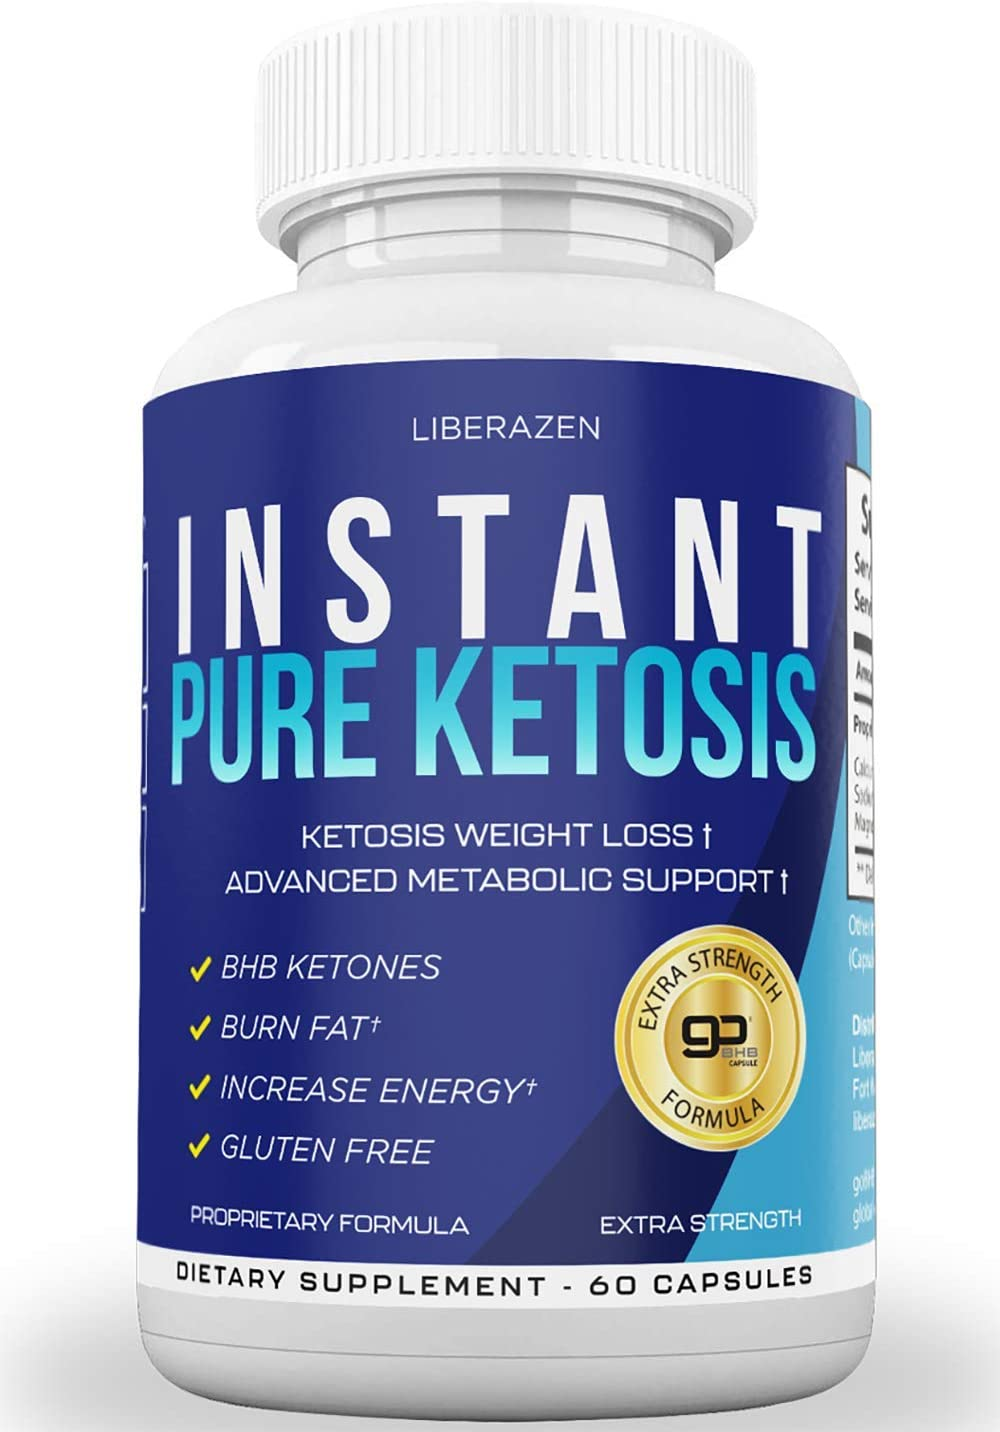 Instant Keto Pills - Advanced Weight Loss Diet Pill with Ketosis - Boost Energy, Get Focus, Manage Cravings & Improve Metabolism - Keto BHB Supplement for Women and Men - 60 Caps